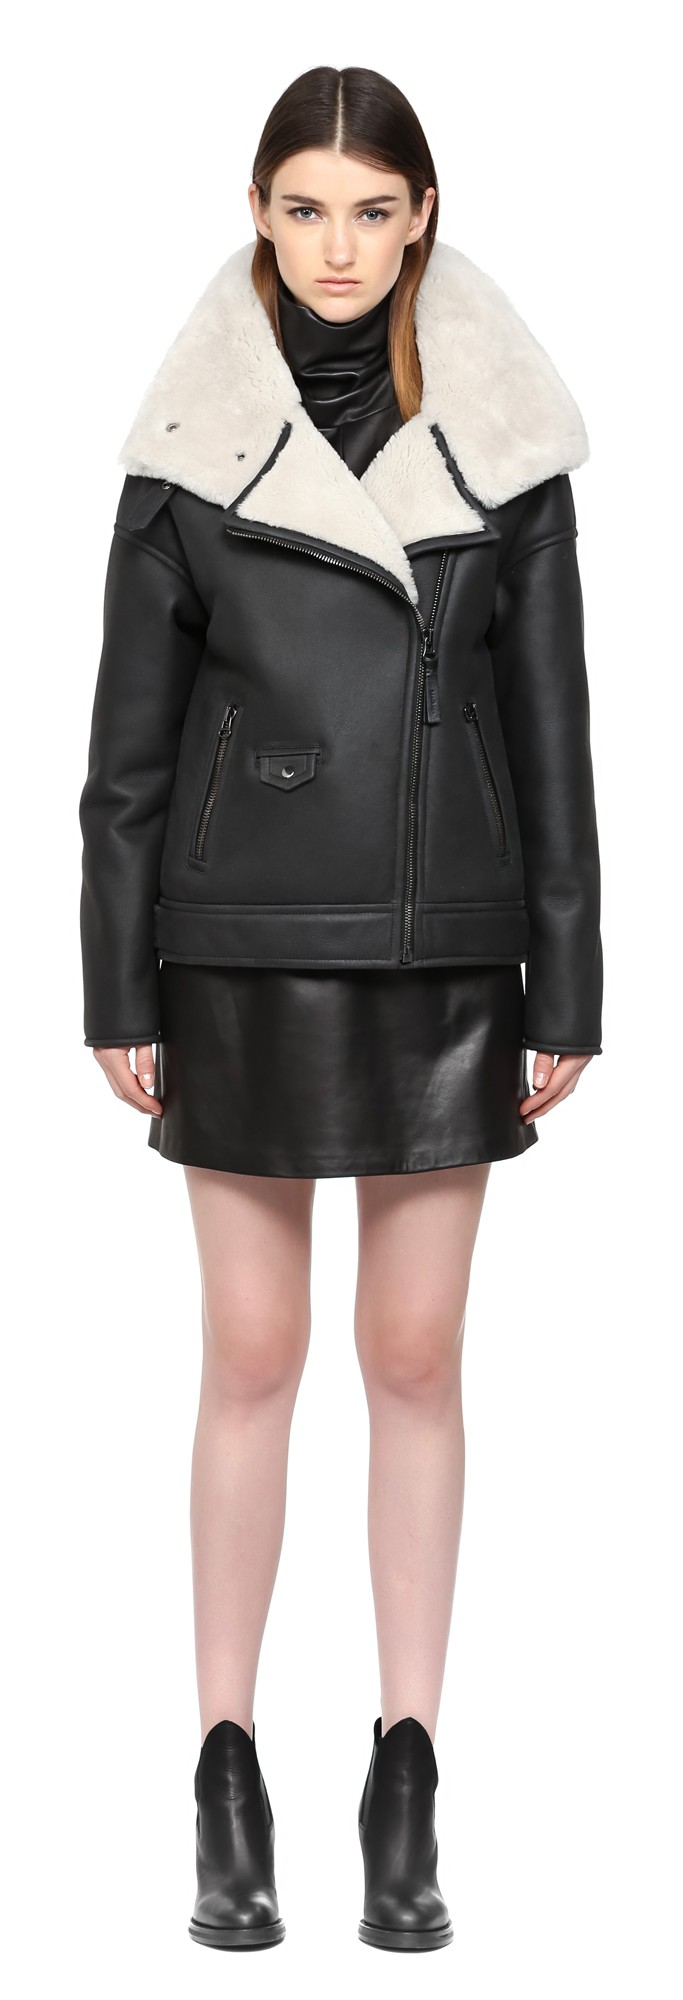 Black Shearling Coat Aviator Style Mackage Women